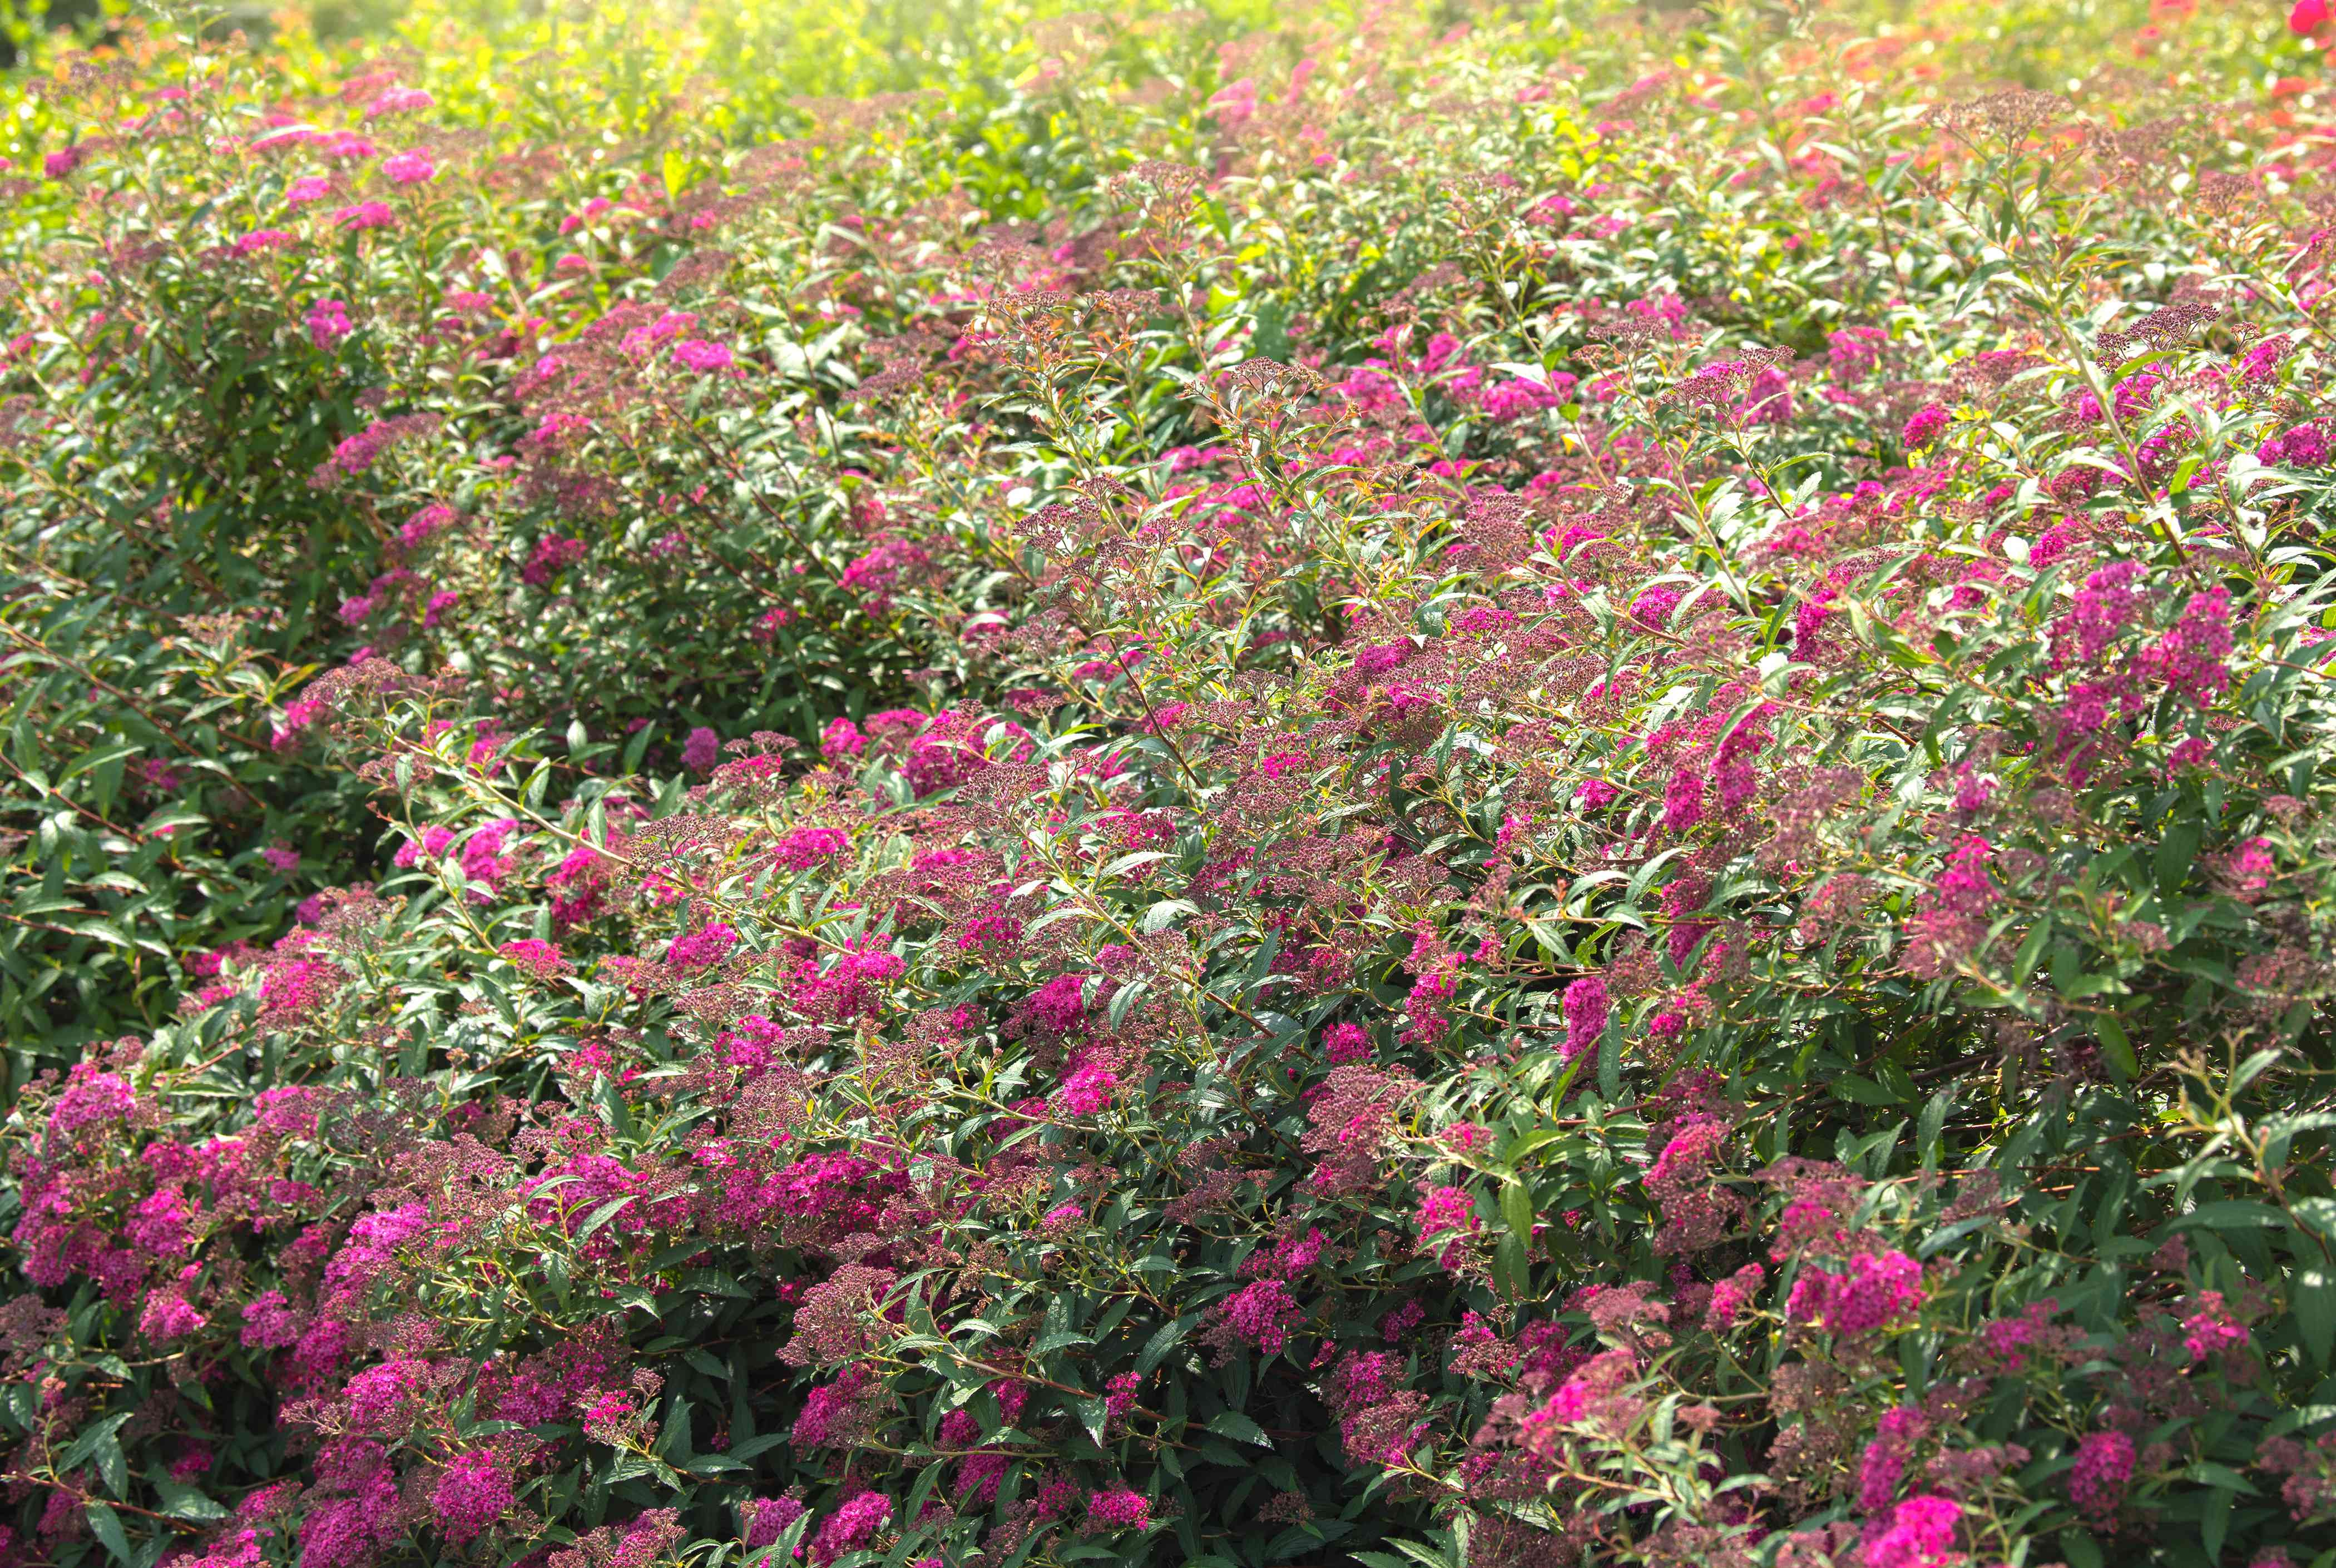 Neon flash spirea shrub branches in sunlight with bright pink flower clusters